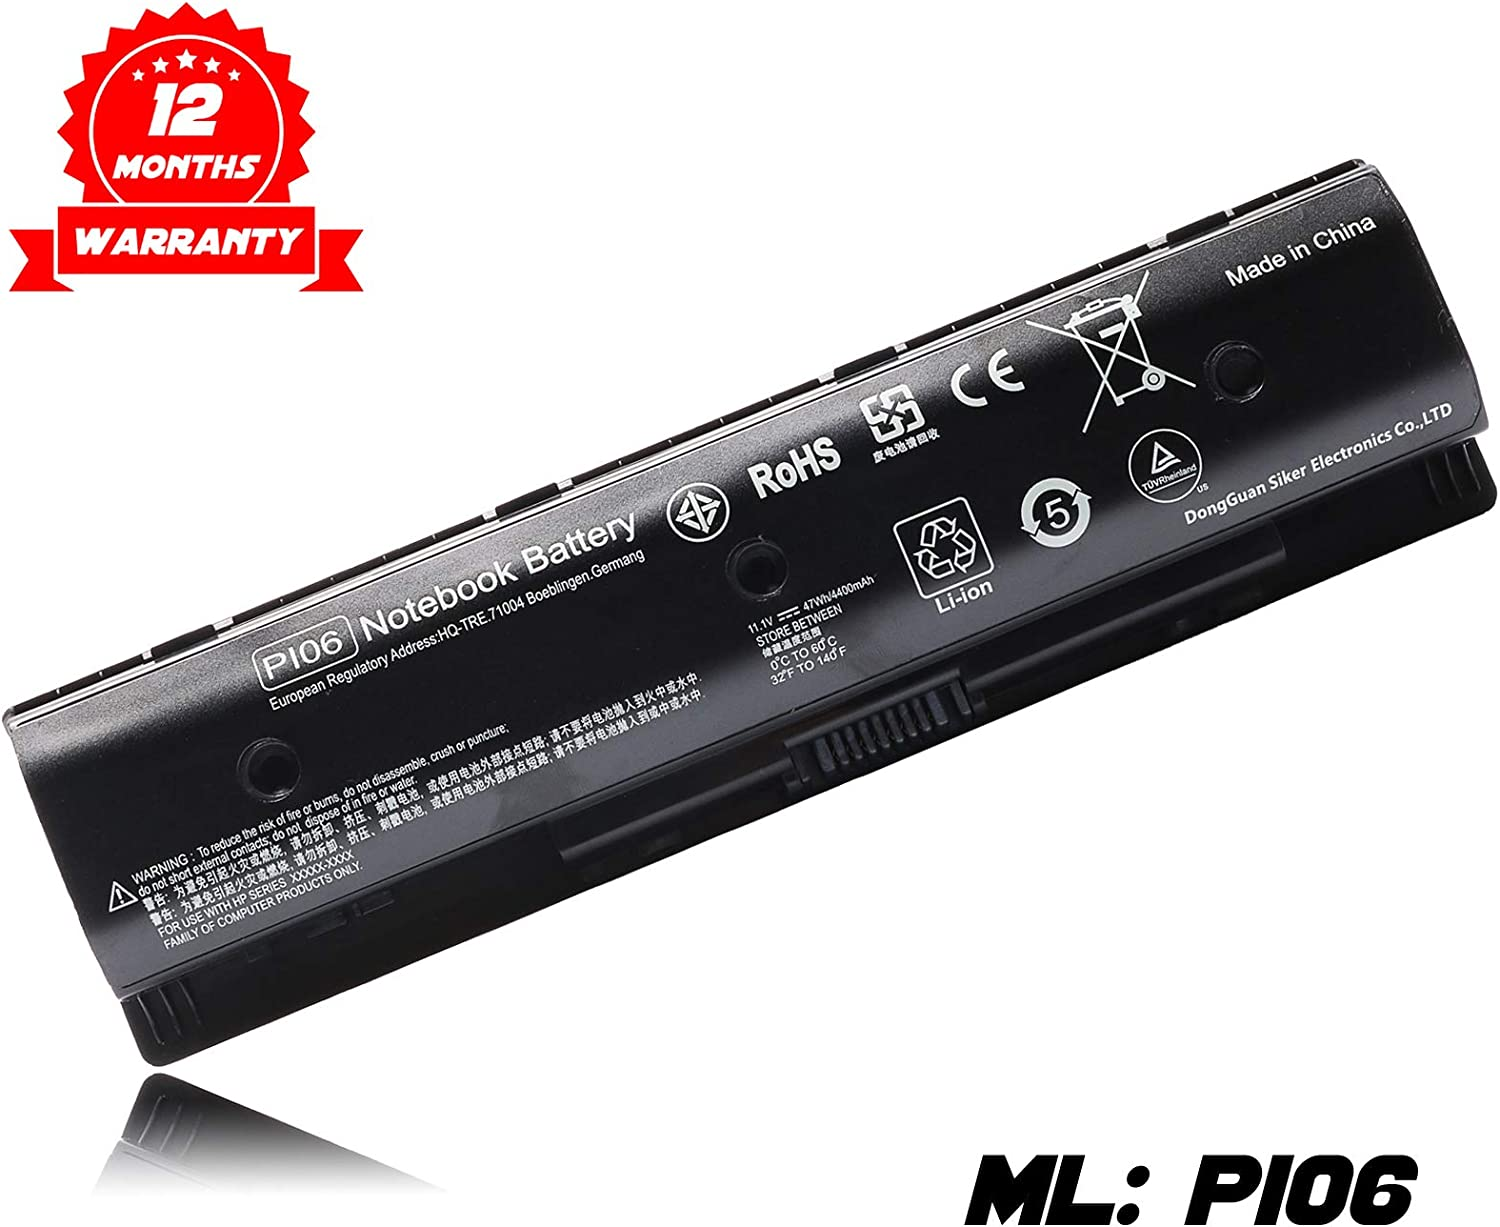 PI06 P106 Notebook Battery for HP Pavilion Touchsmart 14 15 17 Envy Touchsmart 14 15 17 Series Laptop Fits HP Spare 710416-001 710417-001 Hstnn-Lb40 Hstnn-Lb4N Battery-11.1V 47Wh